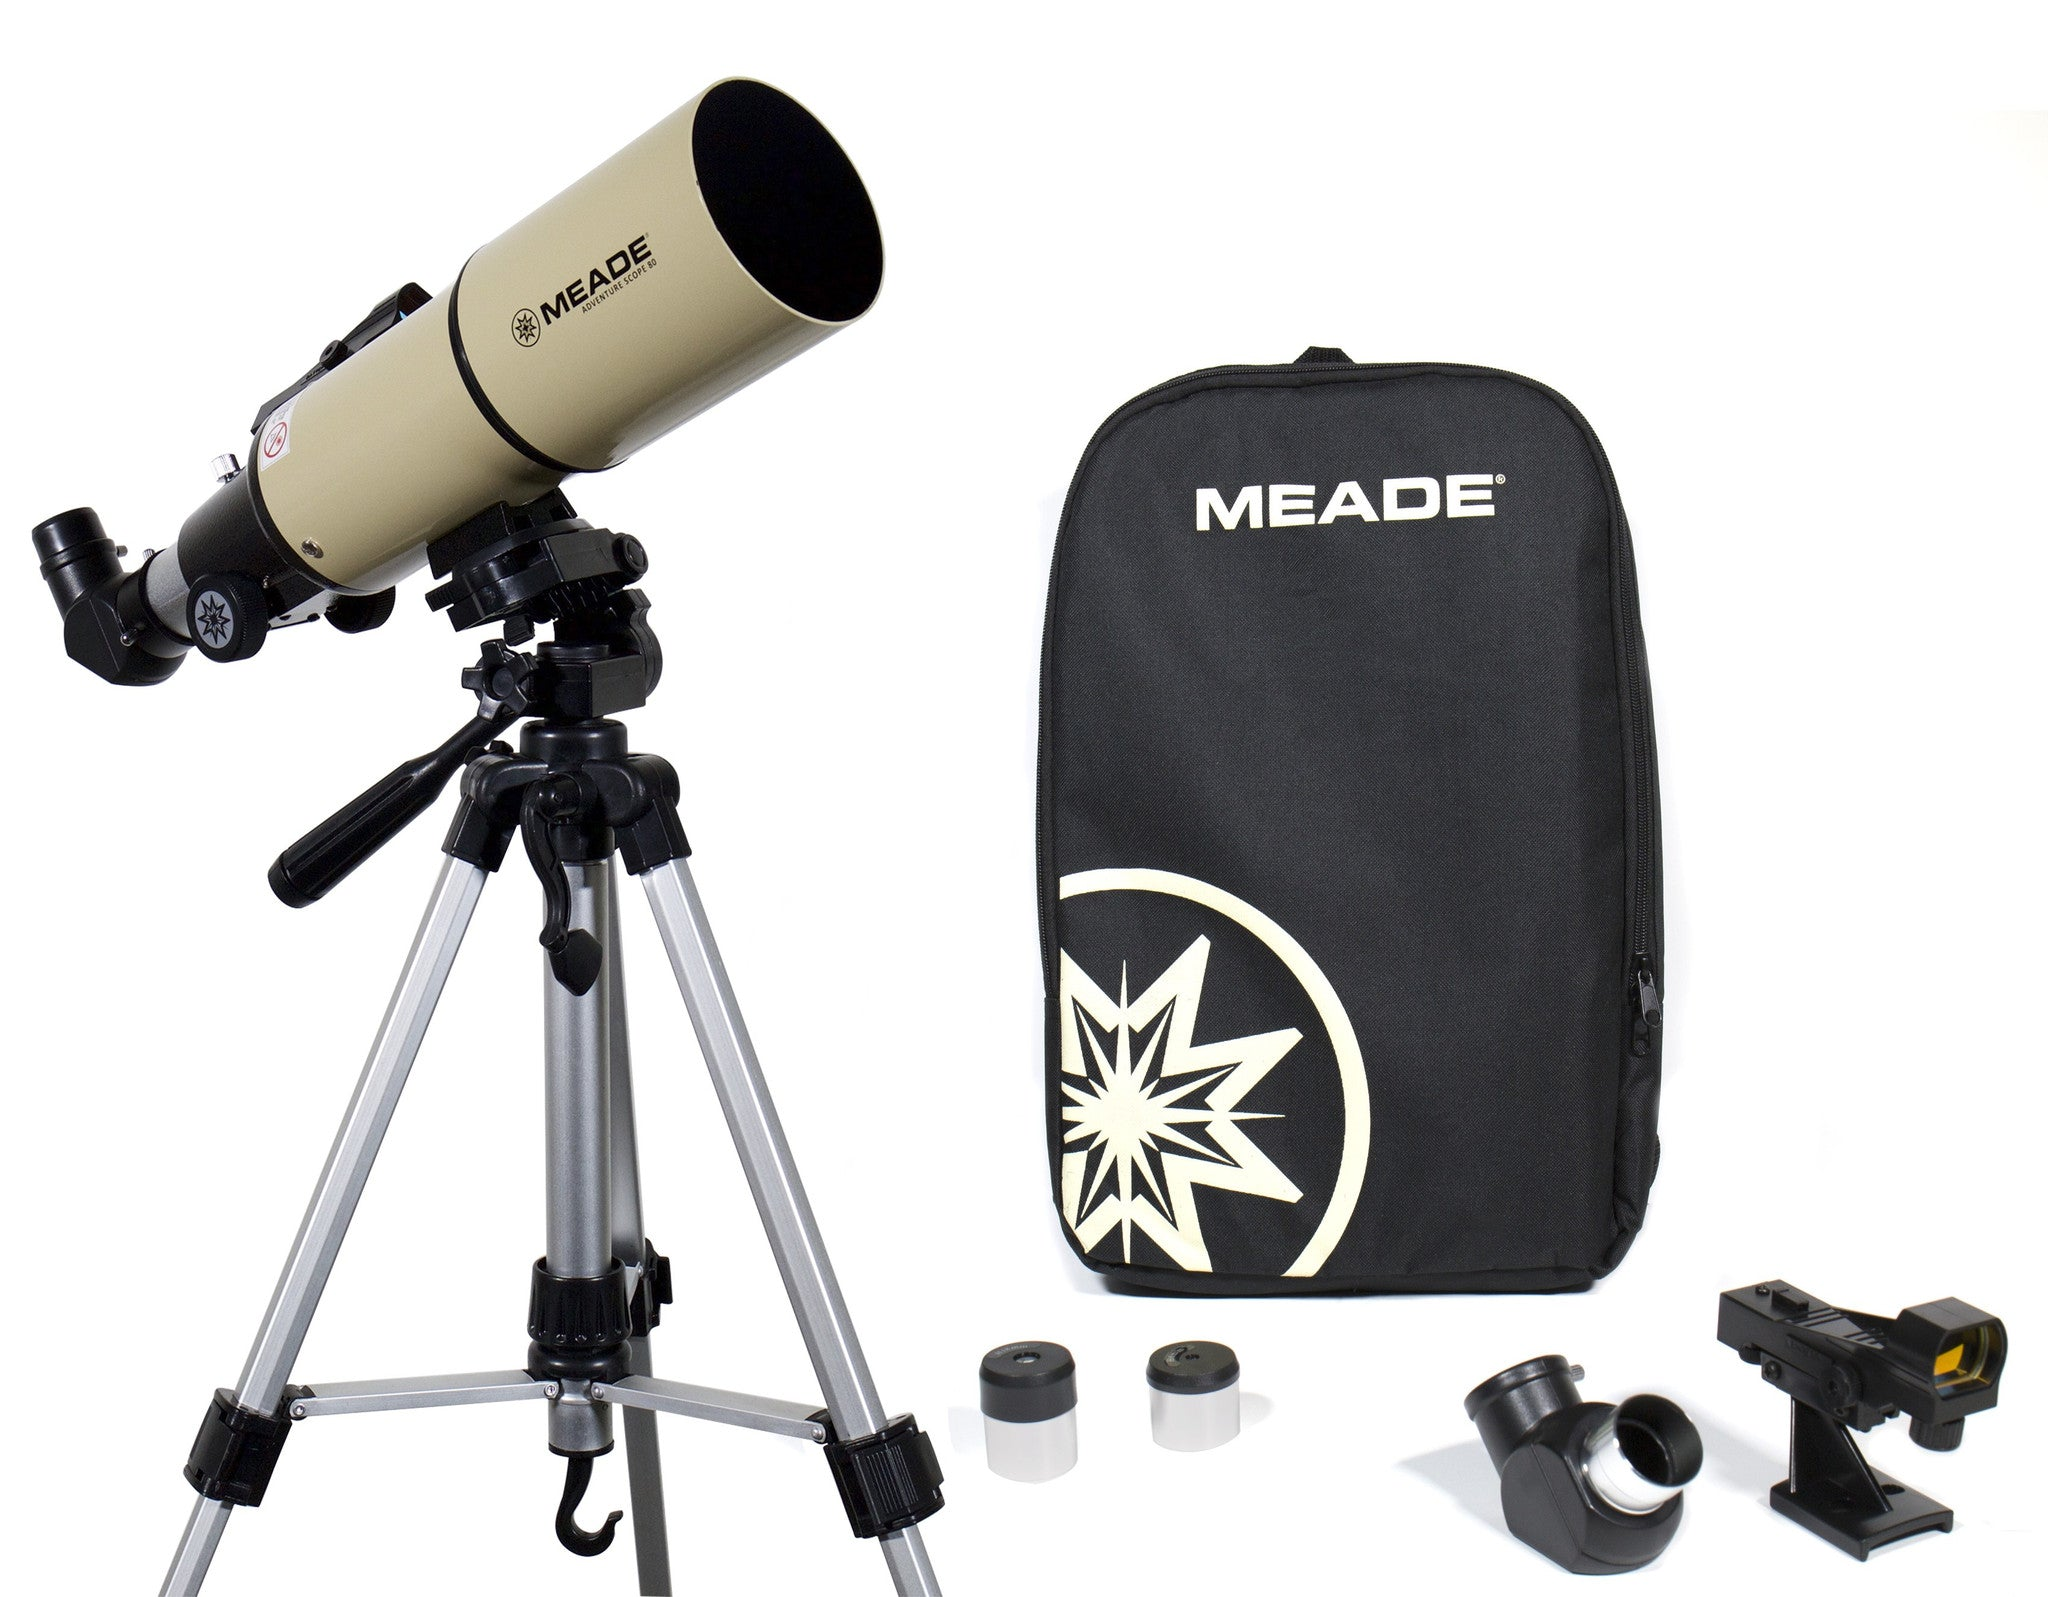 Meade Adventure Scope 80mm - Telescopes - Meade - Helix Camera